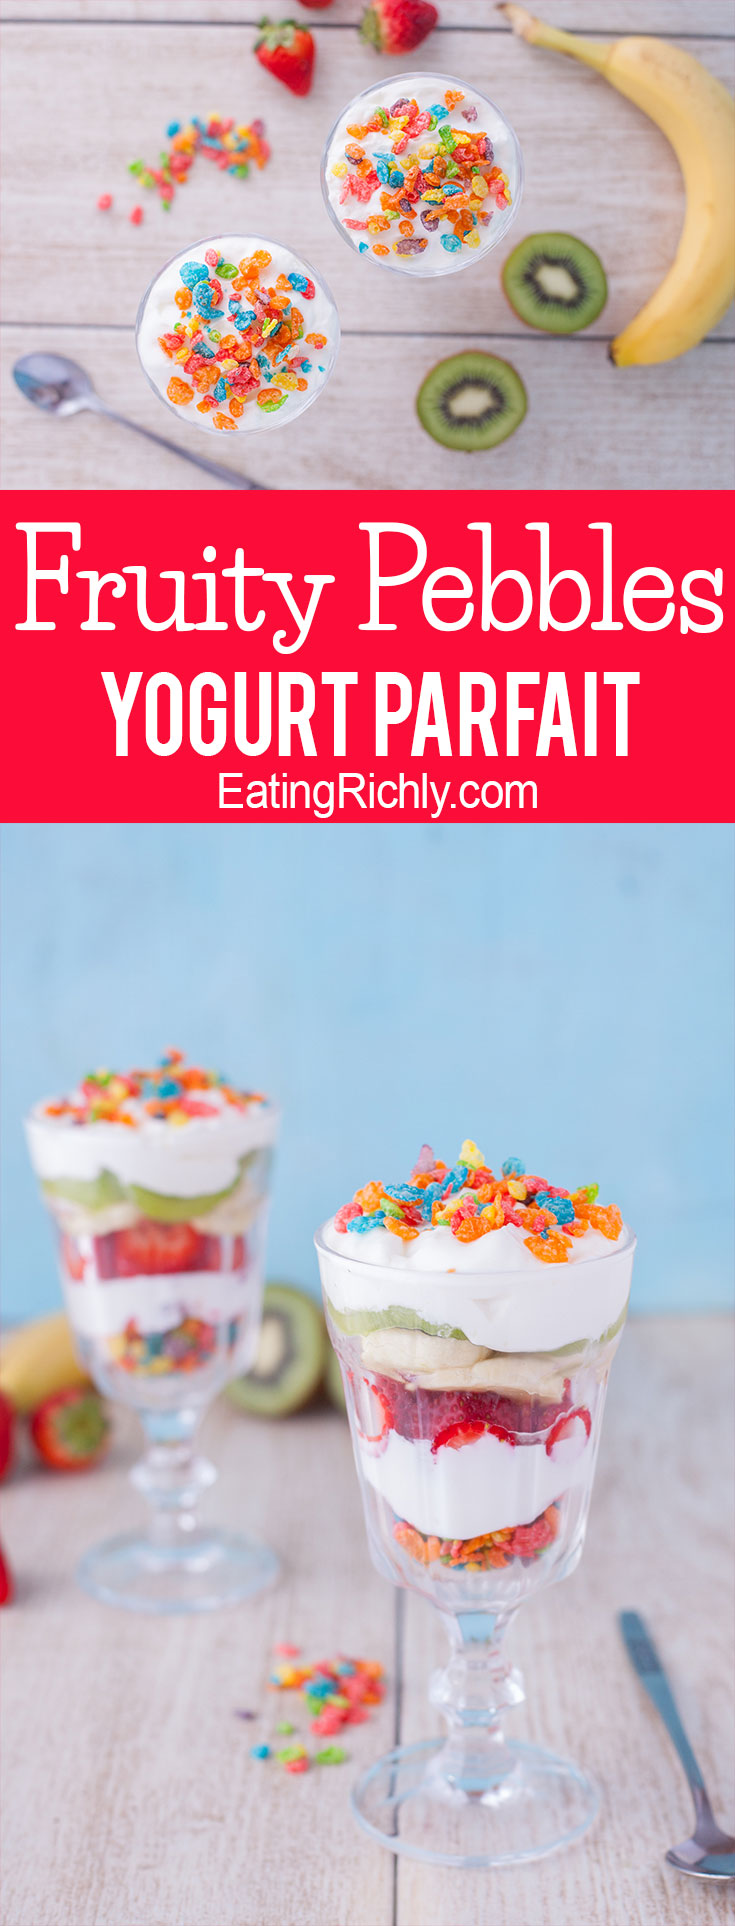 This fruity pebbles dessert parfait recipe layers Greek yogurt, and fresh kiwi, strawberries, and banana with your favorite colorful cereal for a fun treat. From EatingRichly.com